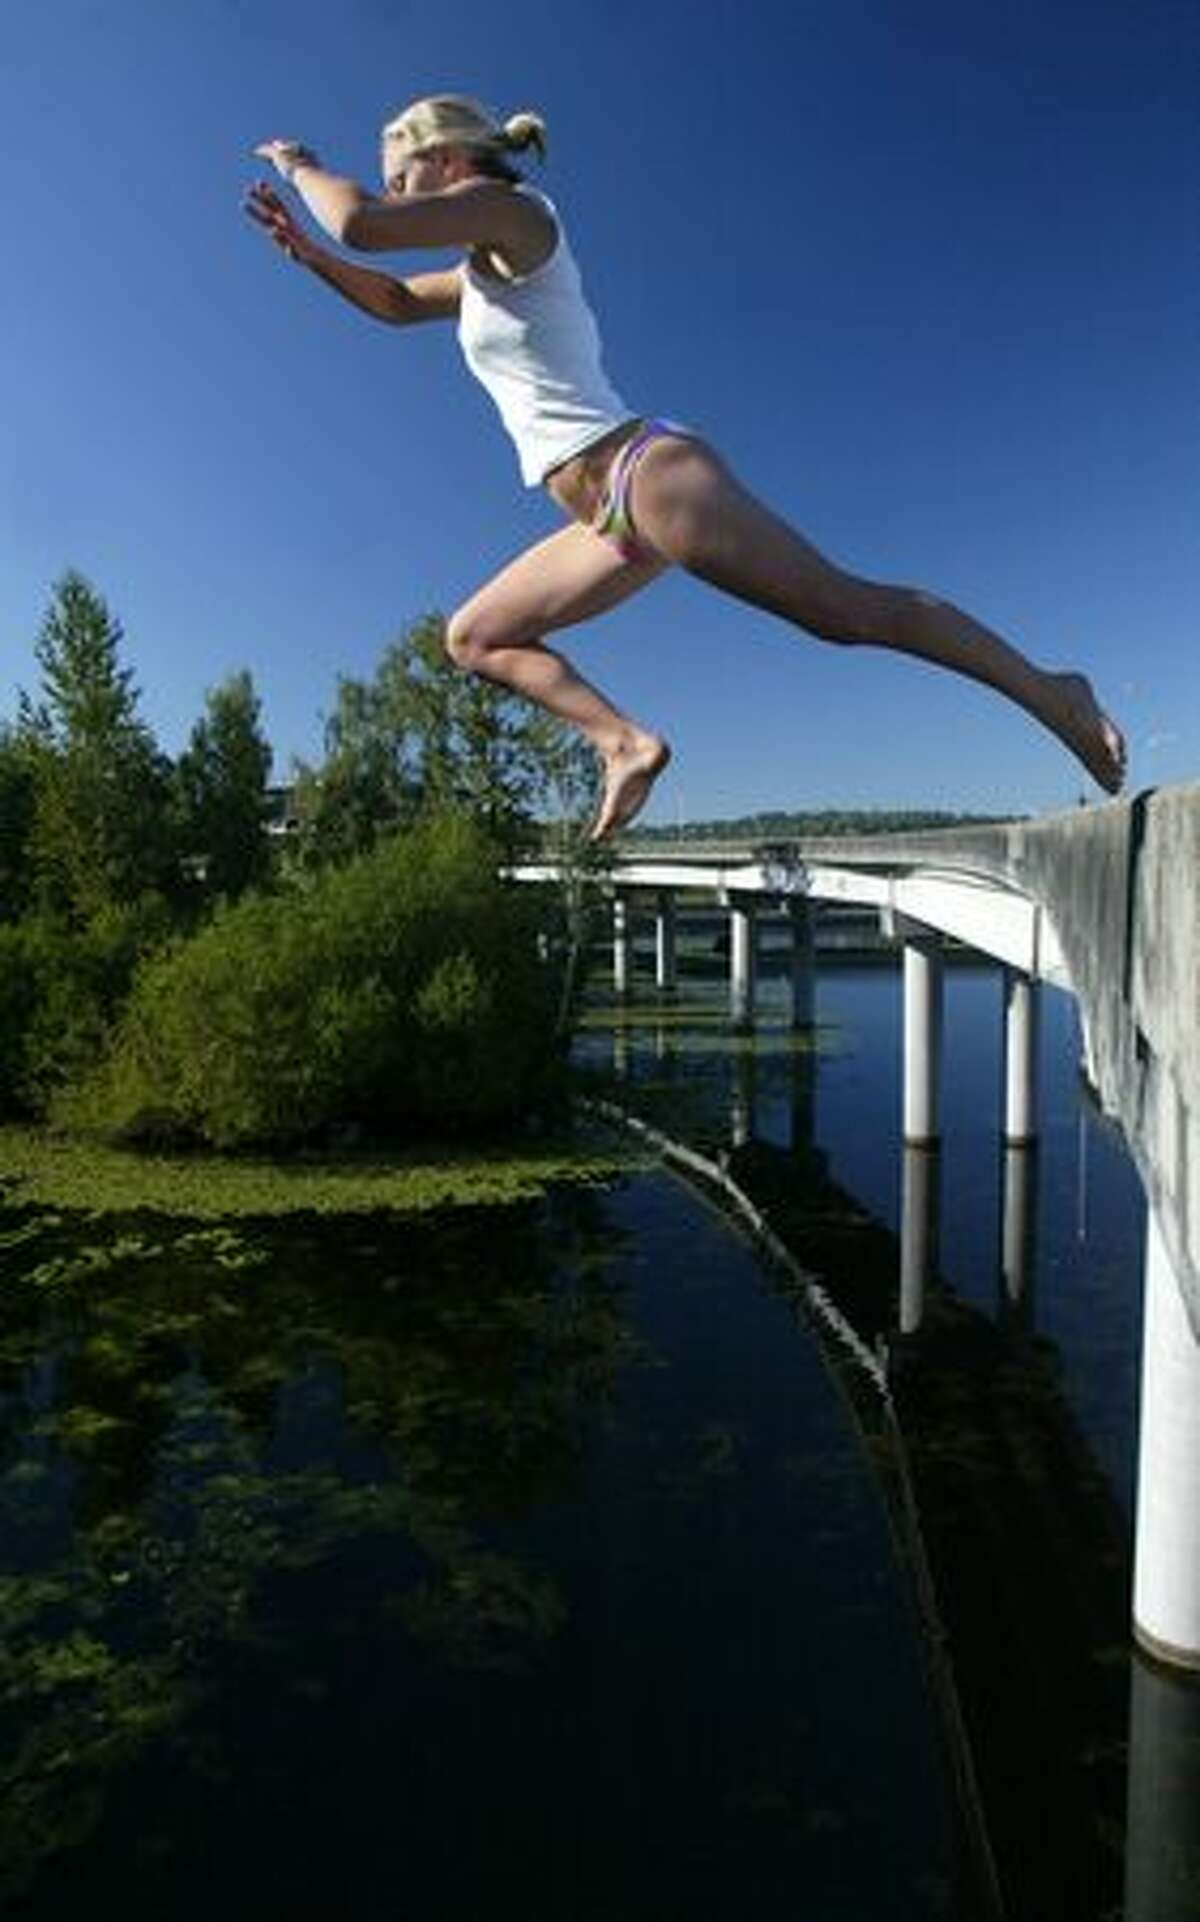 Alex Merrick takes a flying leap off a closed and unused section the 520 Bridge into the cool water of the Washington Park Arboretum below on Monday August 8, 2005 in Seattle. The unused ramp is a popular spot where Seattelites have plunged into the water below for many years.